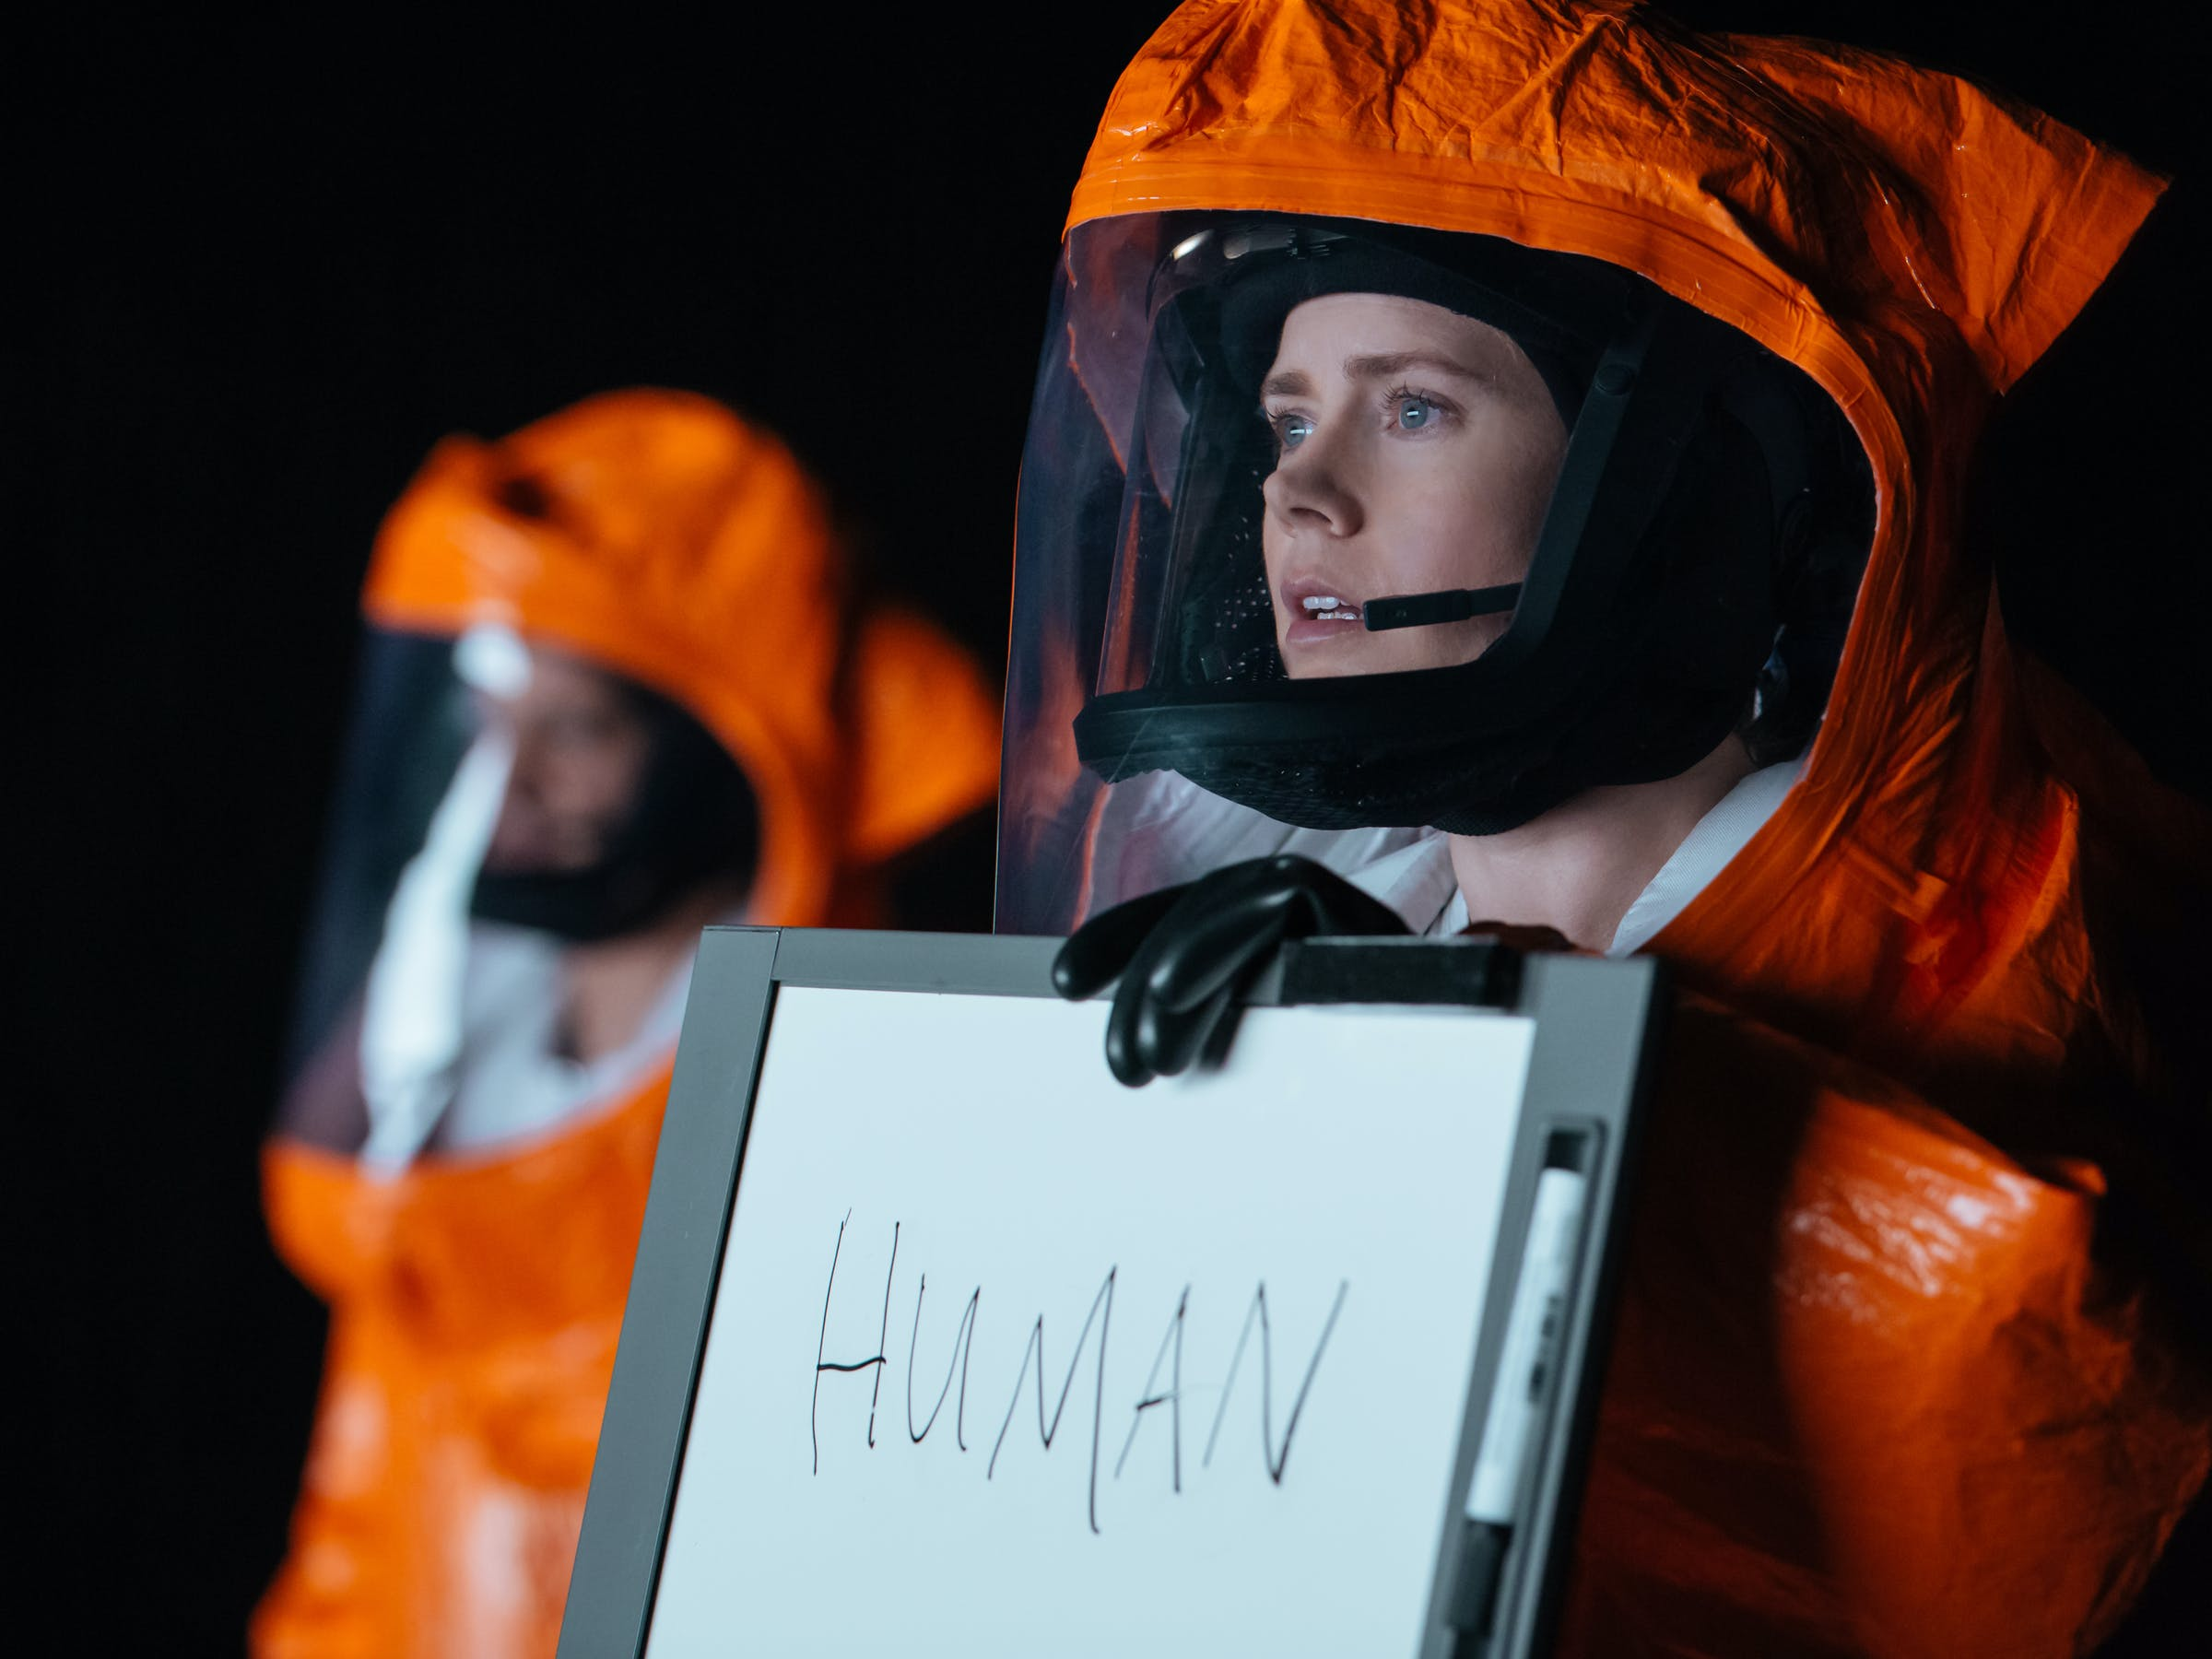 arrival amy adams linguist alien language